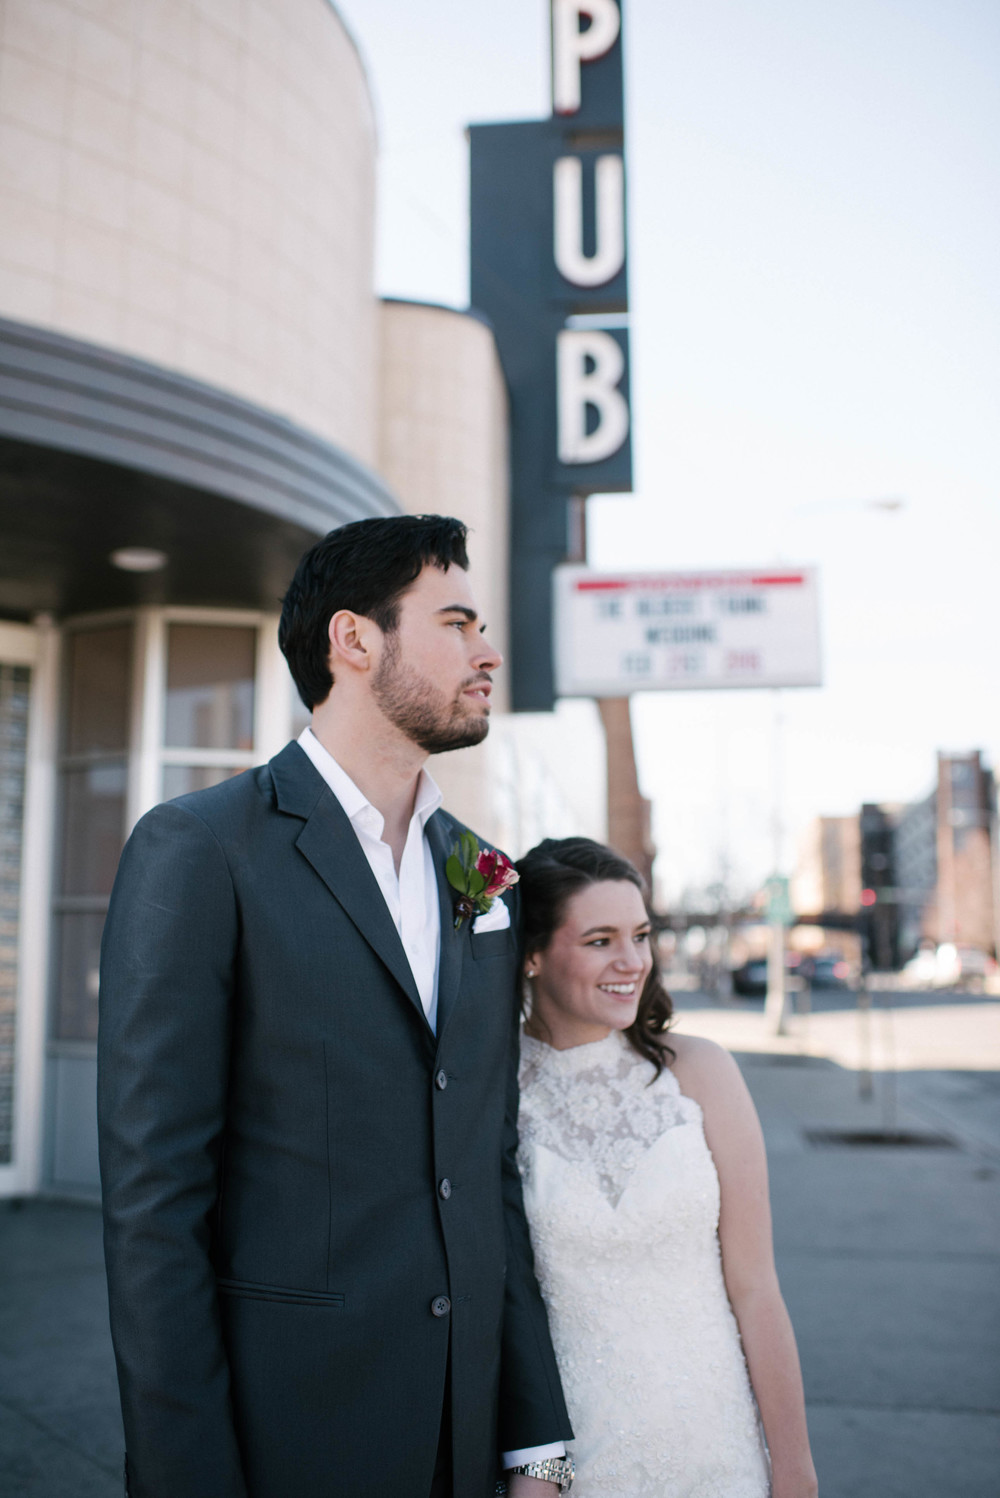 Urban Industrial Wedding at Local Concert Venue